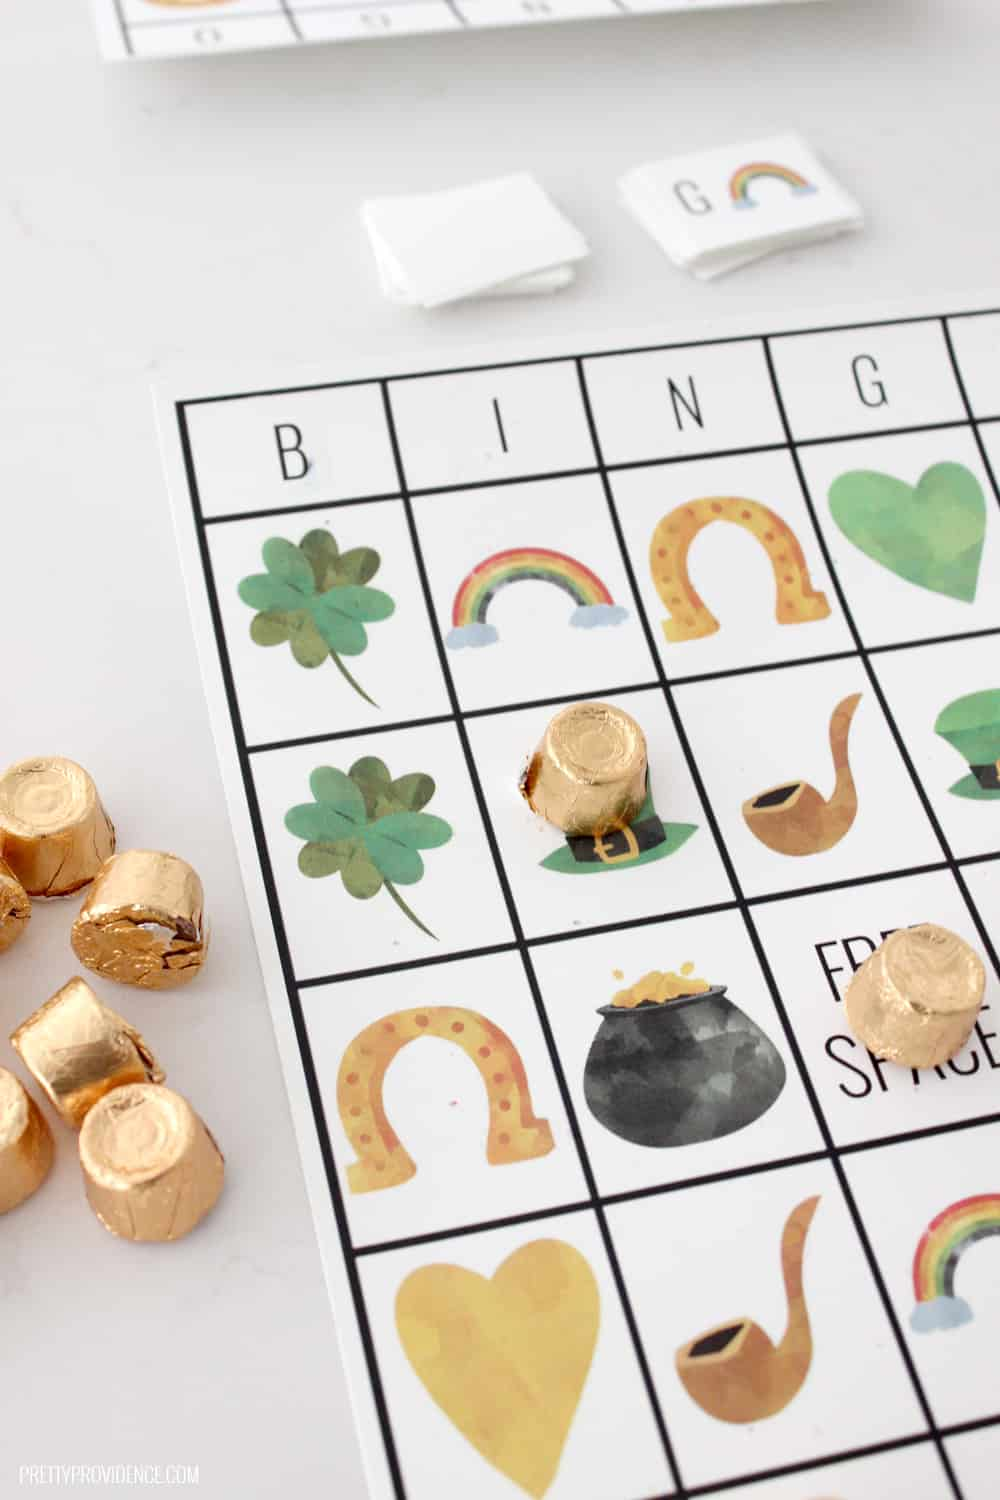 How fun is this free printable St. Patrick's Day Bingo?! It is perfect for all the class parties or even just entertaining the little ones at home!